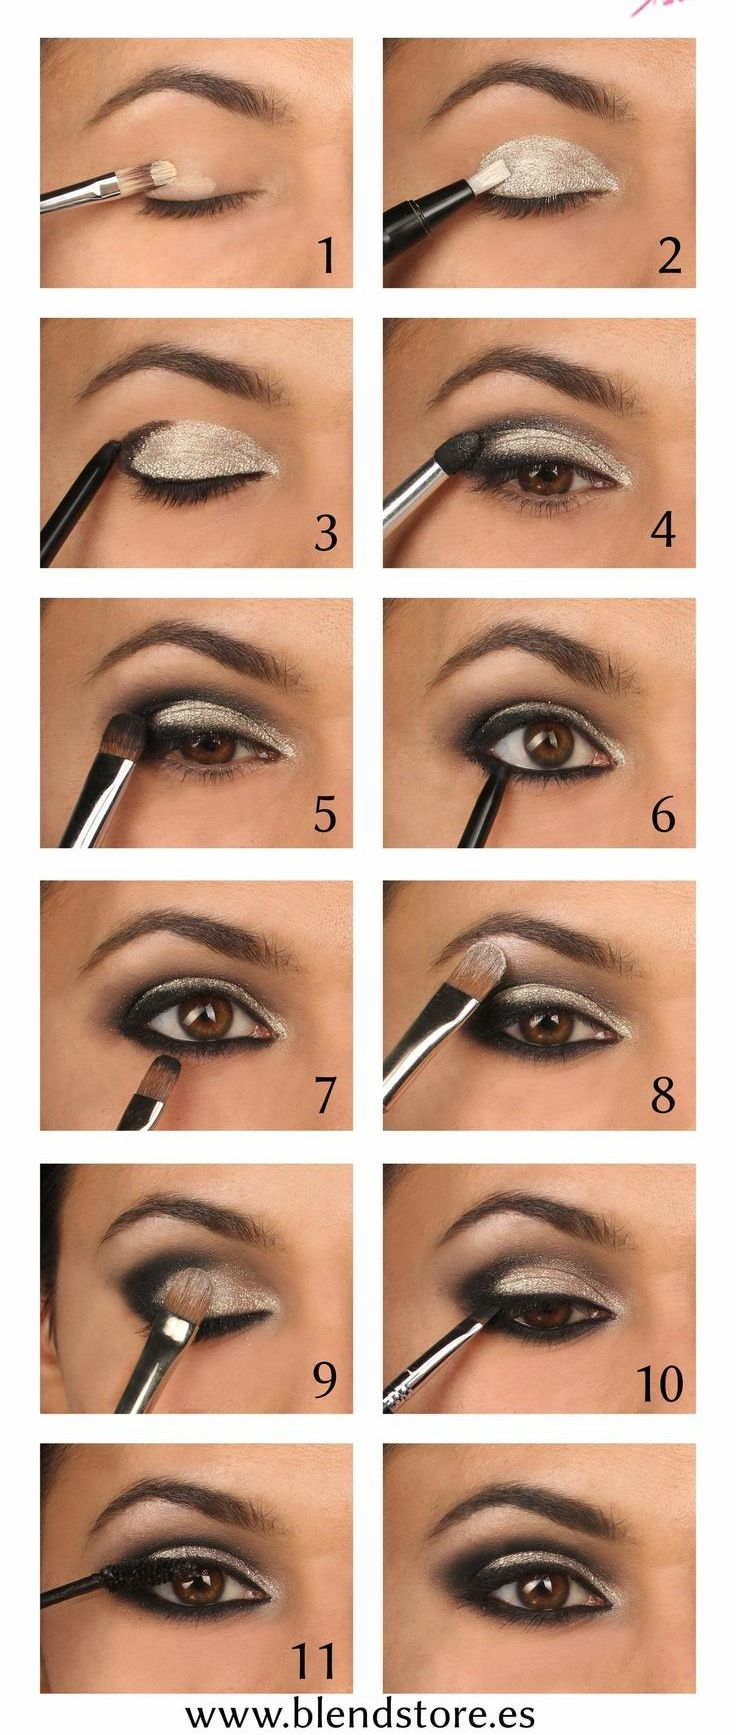 Sigue estos 12 pasos para lograr un smokey eye profesional.